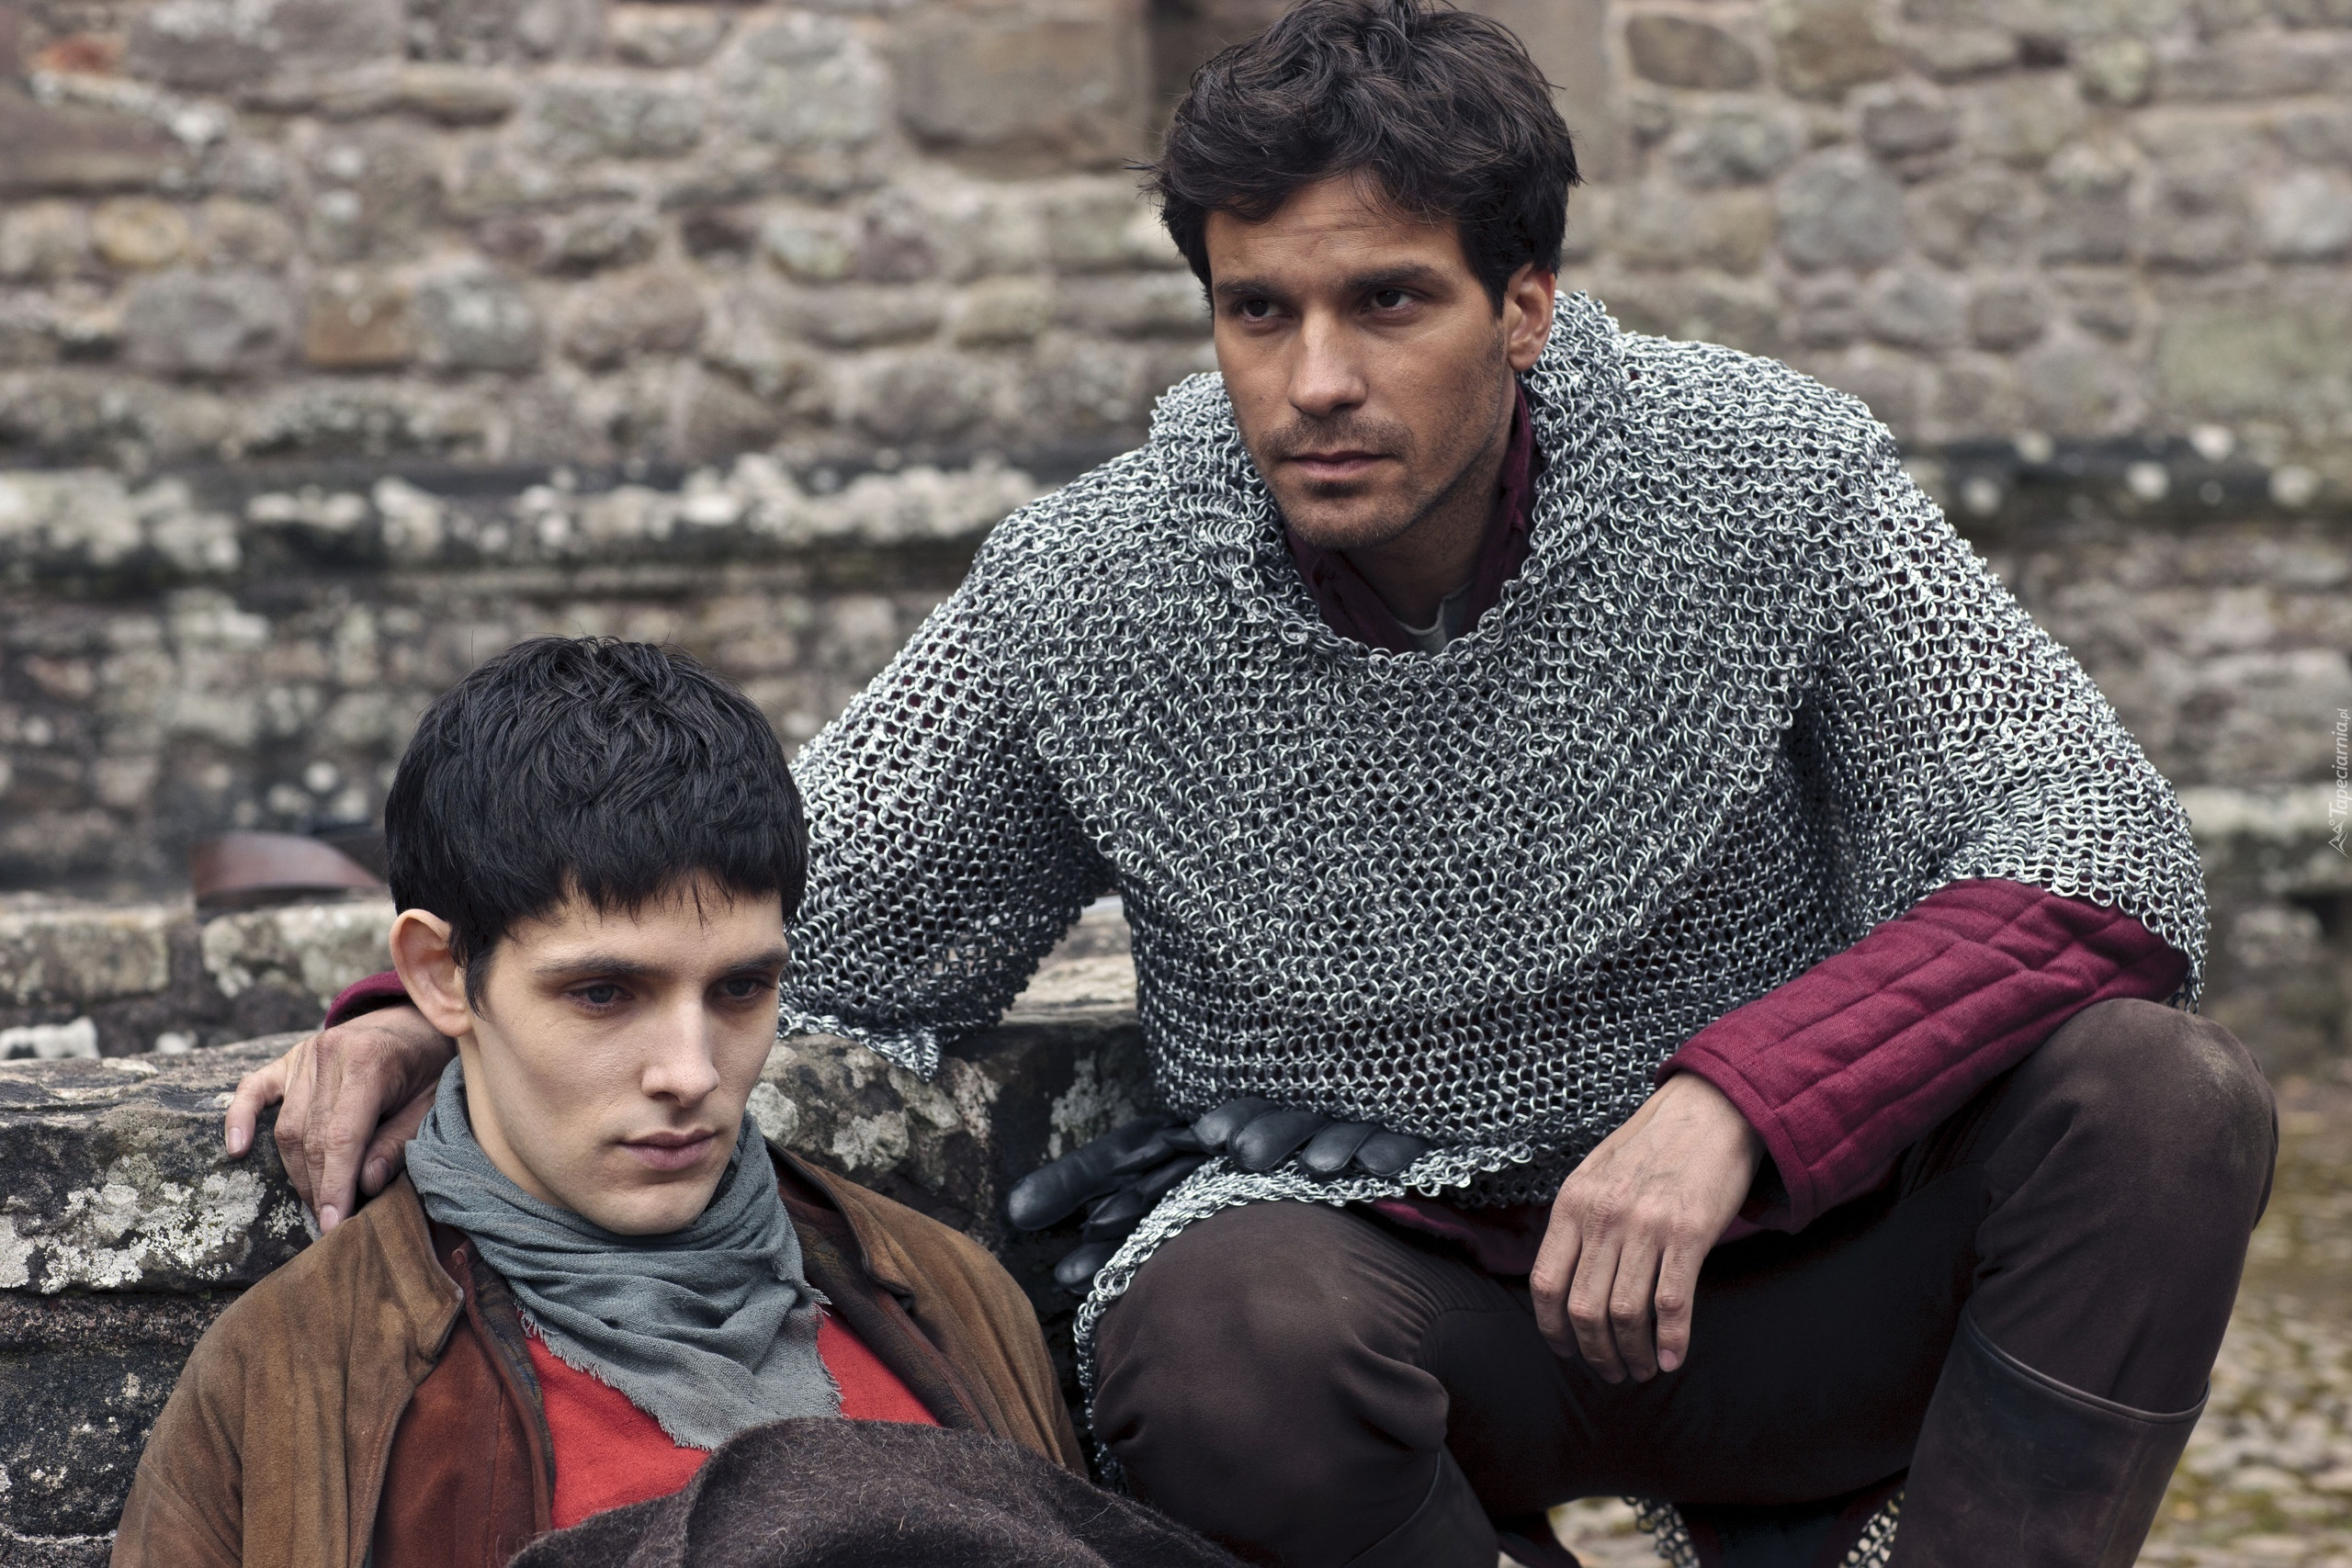 Serial, Przygody Merlina, The Adventures of Merlin, Colin Morgan, Santiago Cabrera